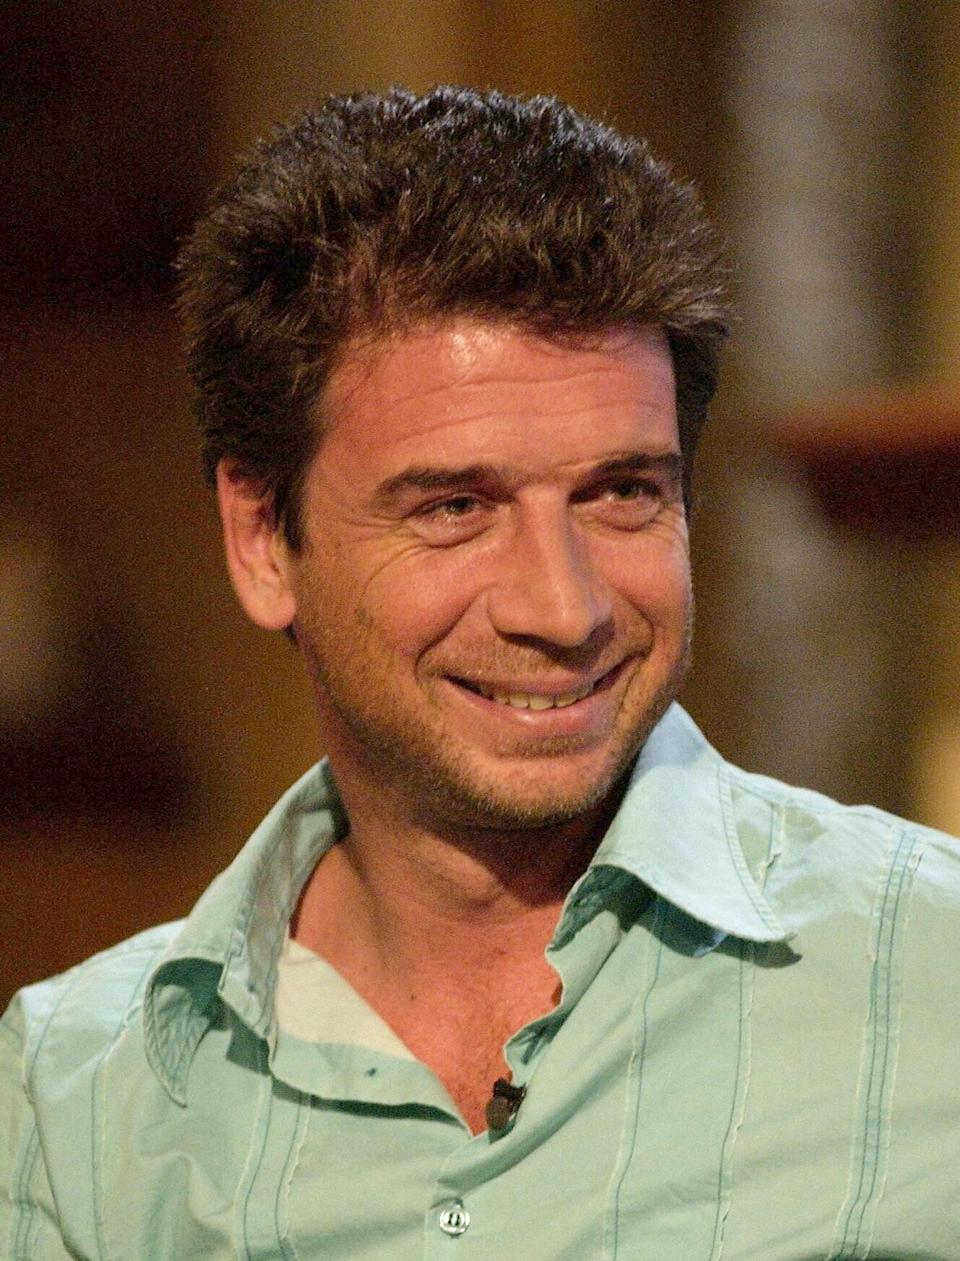 Today With Des And Mel' Tv Show, Britain - 27 Feb 2003, Nick Knowles (Photo by Brian Rasic/Getty Images)